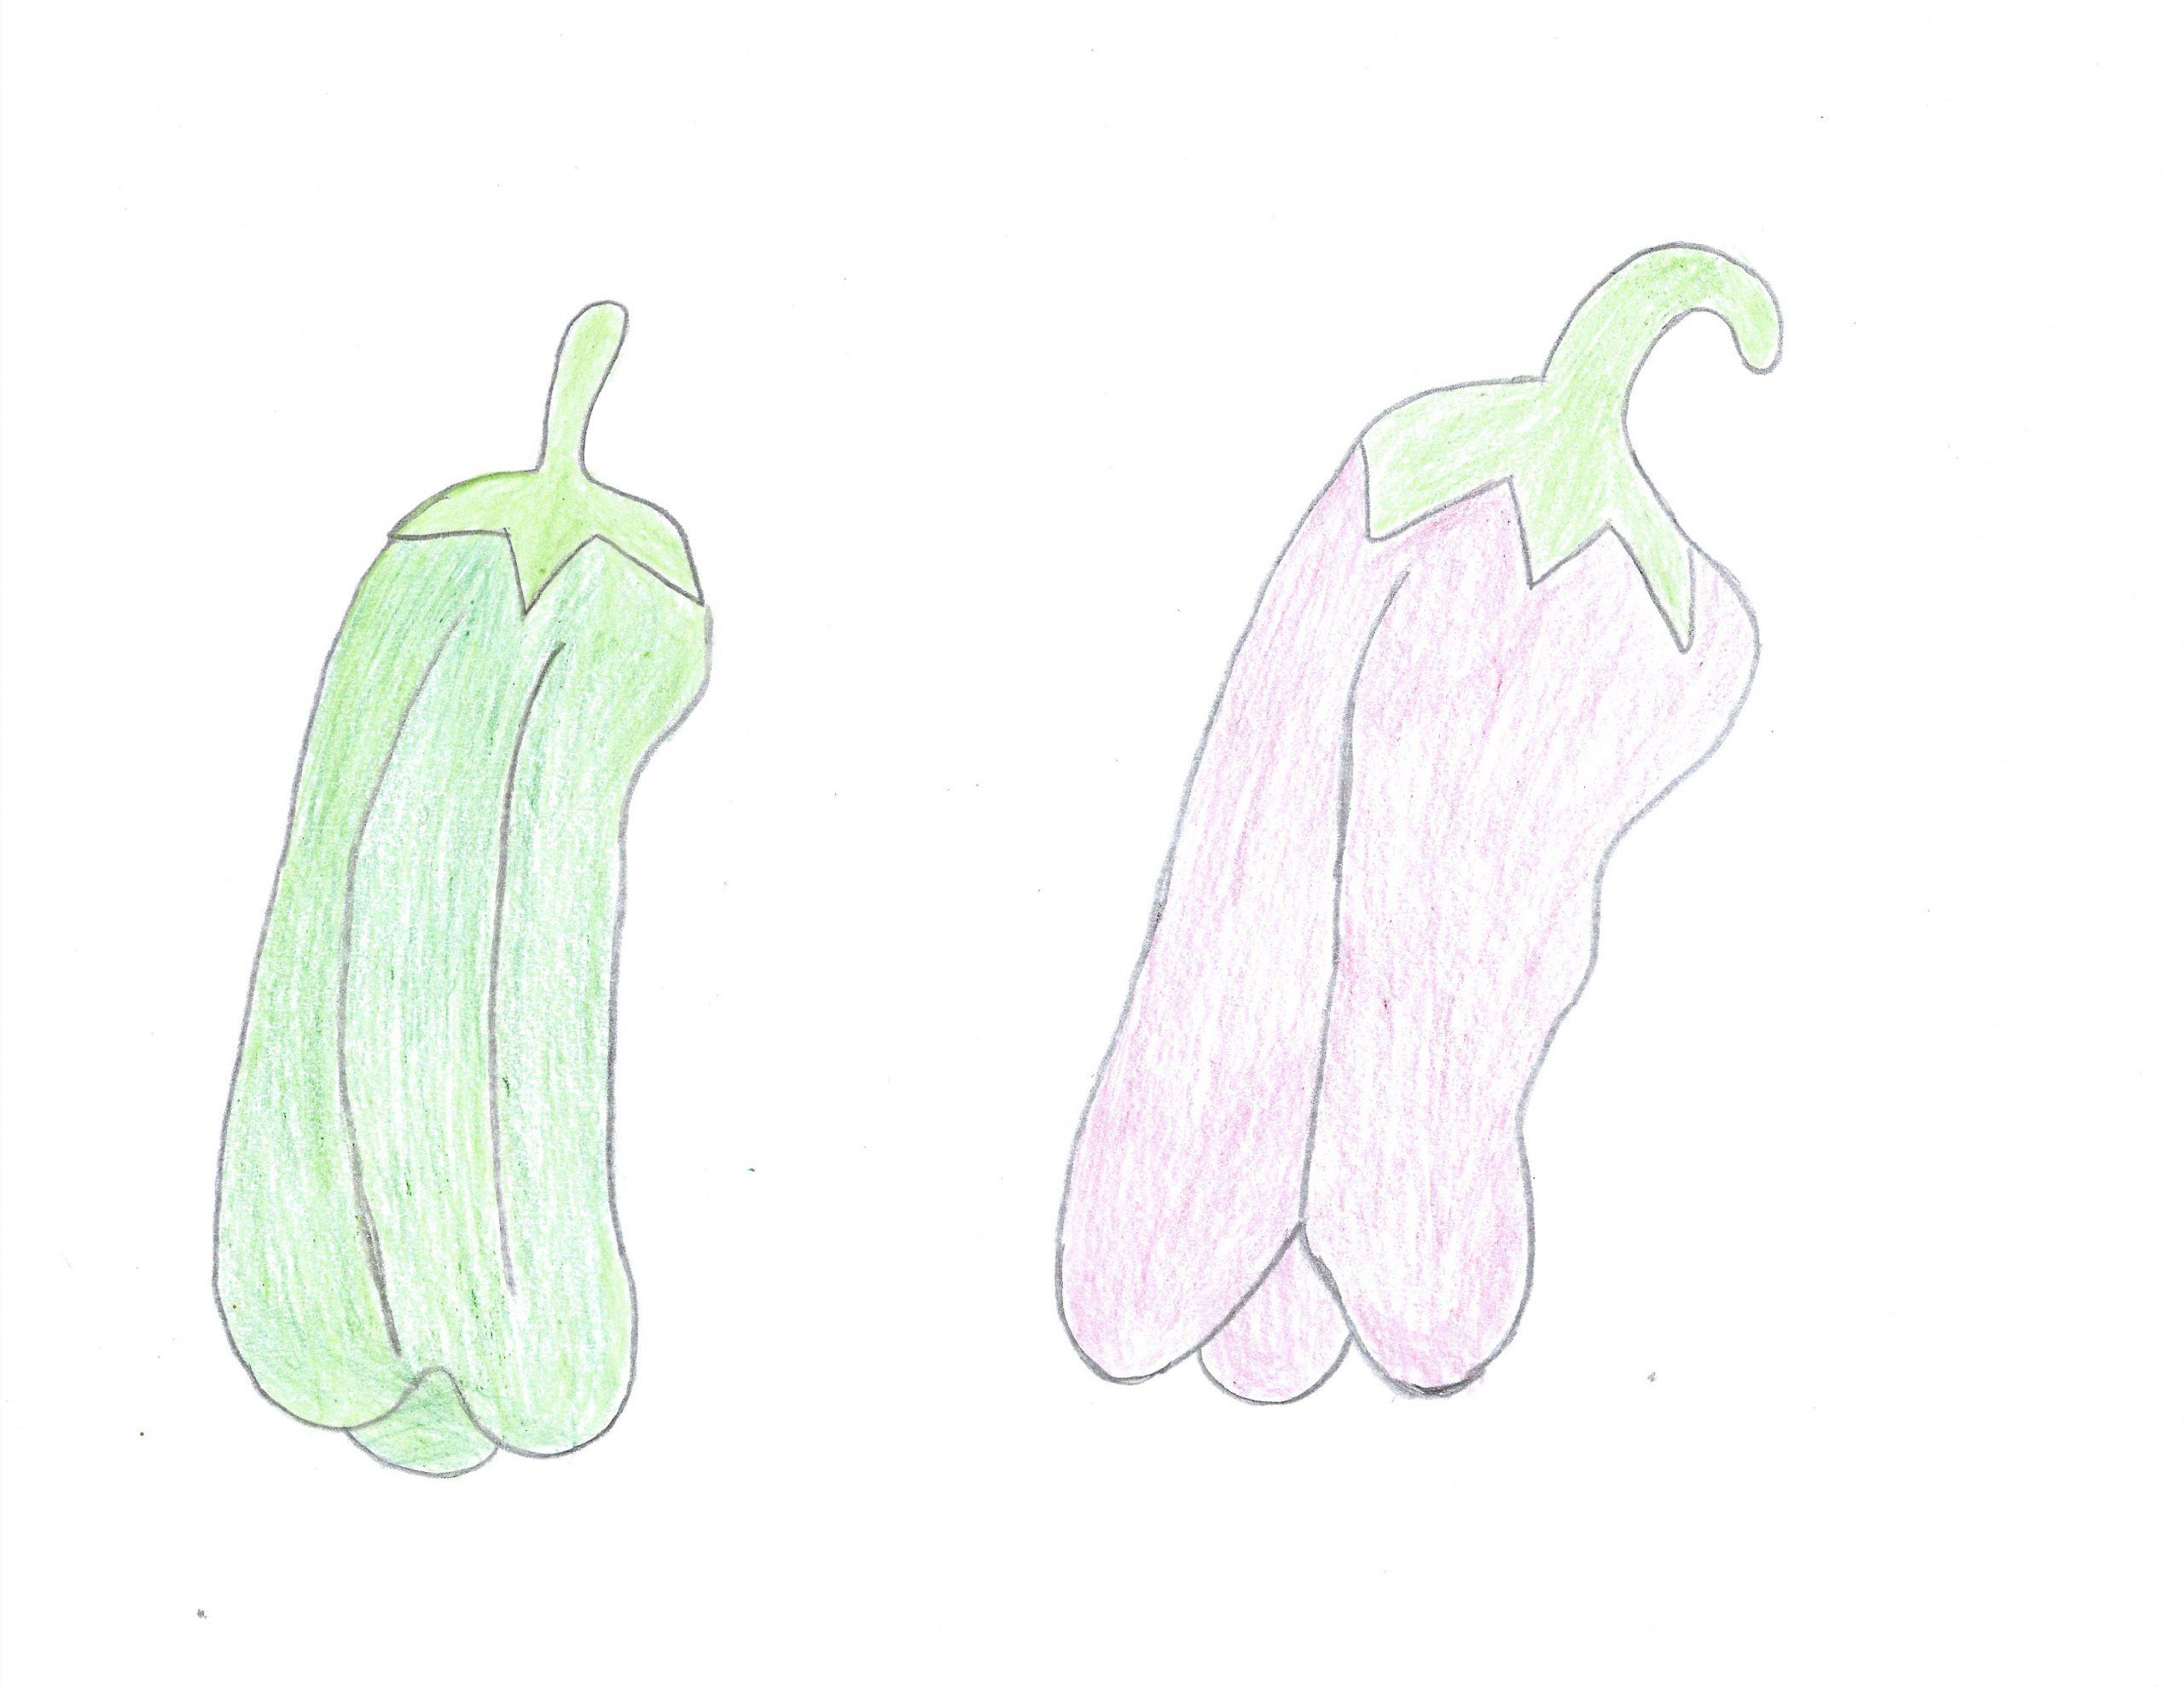 Locote ― The bell pepper